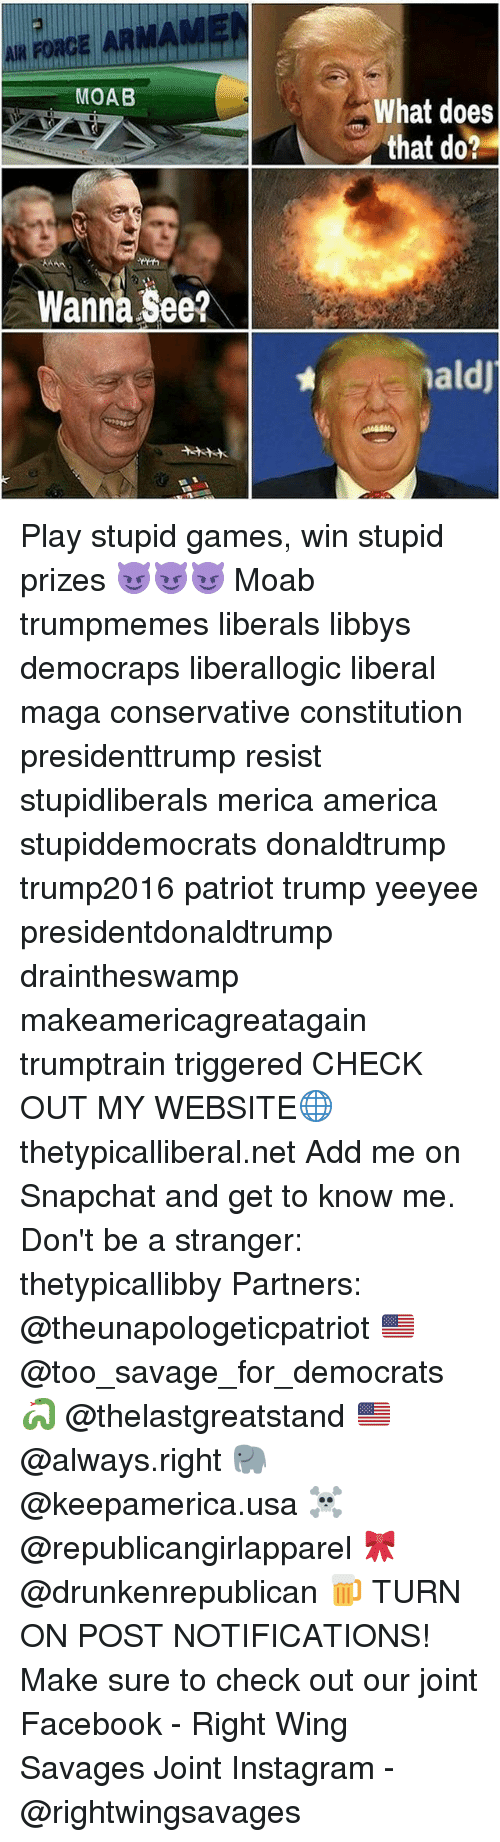 play-stupid-games: MOAB  Wanna See?  What does  that do?  aldj Play stupid games, win stupid prizes 😈😈😈 Moab trumpmemes liberals libbys democraps liberallogic liberal maga conservative constitution presidenttrump resist stupidliberals merica america stupiddemocrats donaldtrump trump2016 patriot trump yeeyee presidentdonaldtrump draintheswamp makeamericagreatagain trumptrain triggered CHECK OUT MY WEBSITE🌐 thetypicalliberal.net Add me on Snapchat and get to know me. Don't be a stranger: thetypicallibby Partners: @theunapologeticpatriot 🇺🇸 @too_savage_for_democrats 🐍 @thelastgreatstand 🇺🇸 @always.right 🐘 @keepamerica.usa ☠️ @republicangirlapparel 🎀 @drunkenrepublican 🍺 TURN ON POST NOTIFICATIONS! Make sure to check out our joint Facebook - Right Wing Savages Joint Instagram - @rightwingsavages